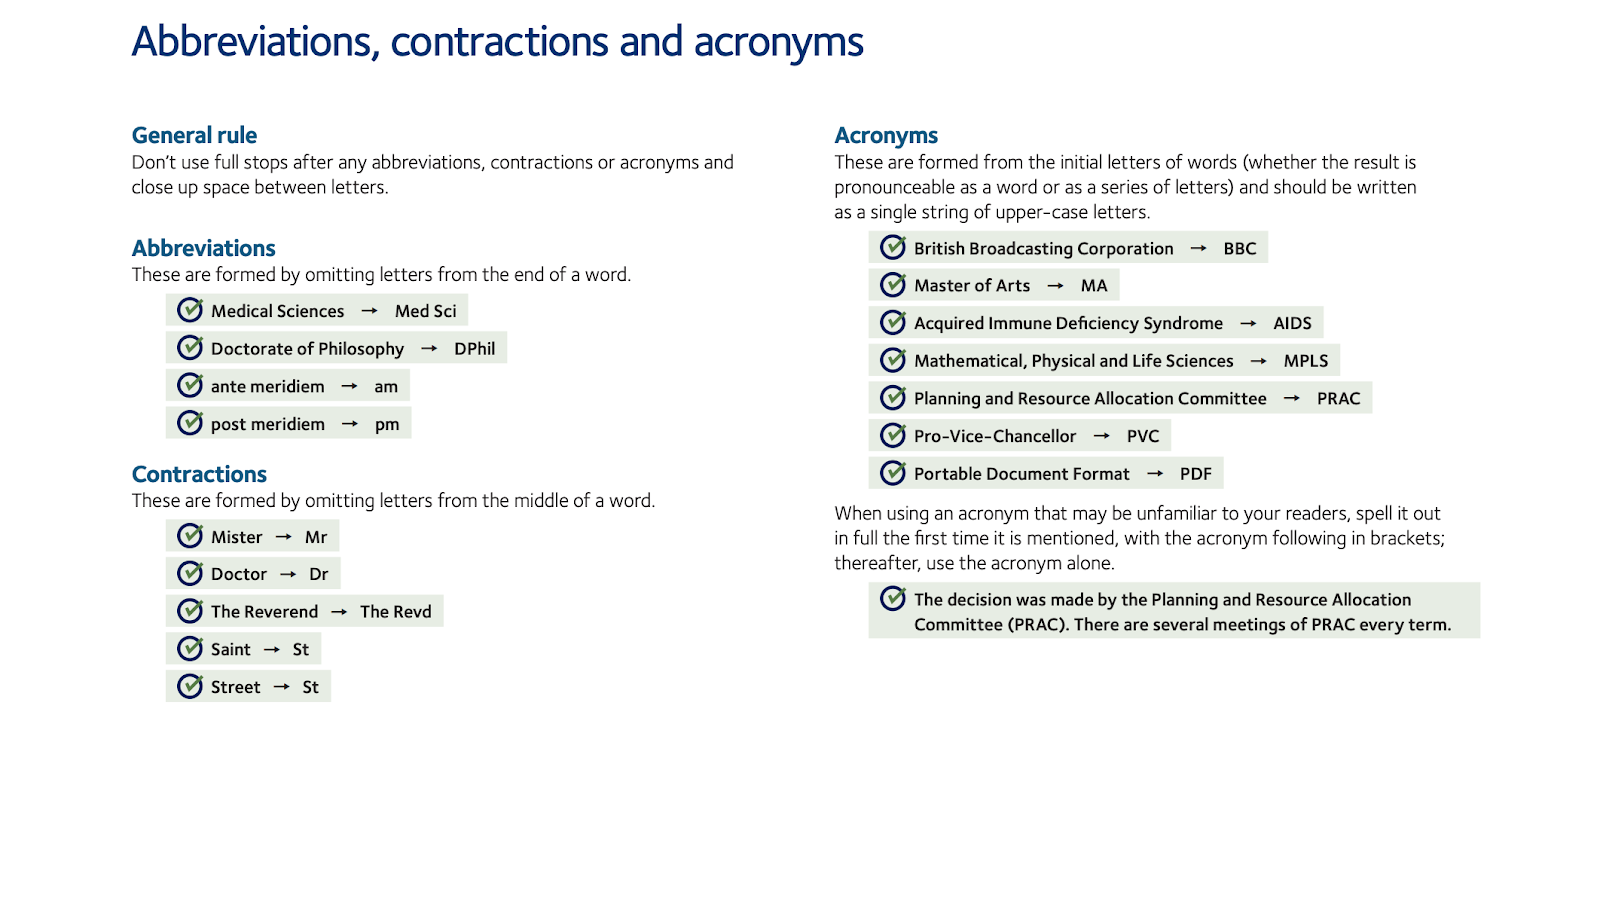 Another page of the style guide for the University of Oxford. This page is about abbreviations, contractions and acronyms. The page shows different correct examples for each of these elements. They have written the examples out next to a green check mark. An example of a correct abbreviation included is Medical Sciences being abbreviated to Med Sci.